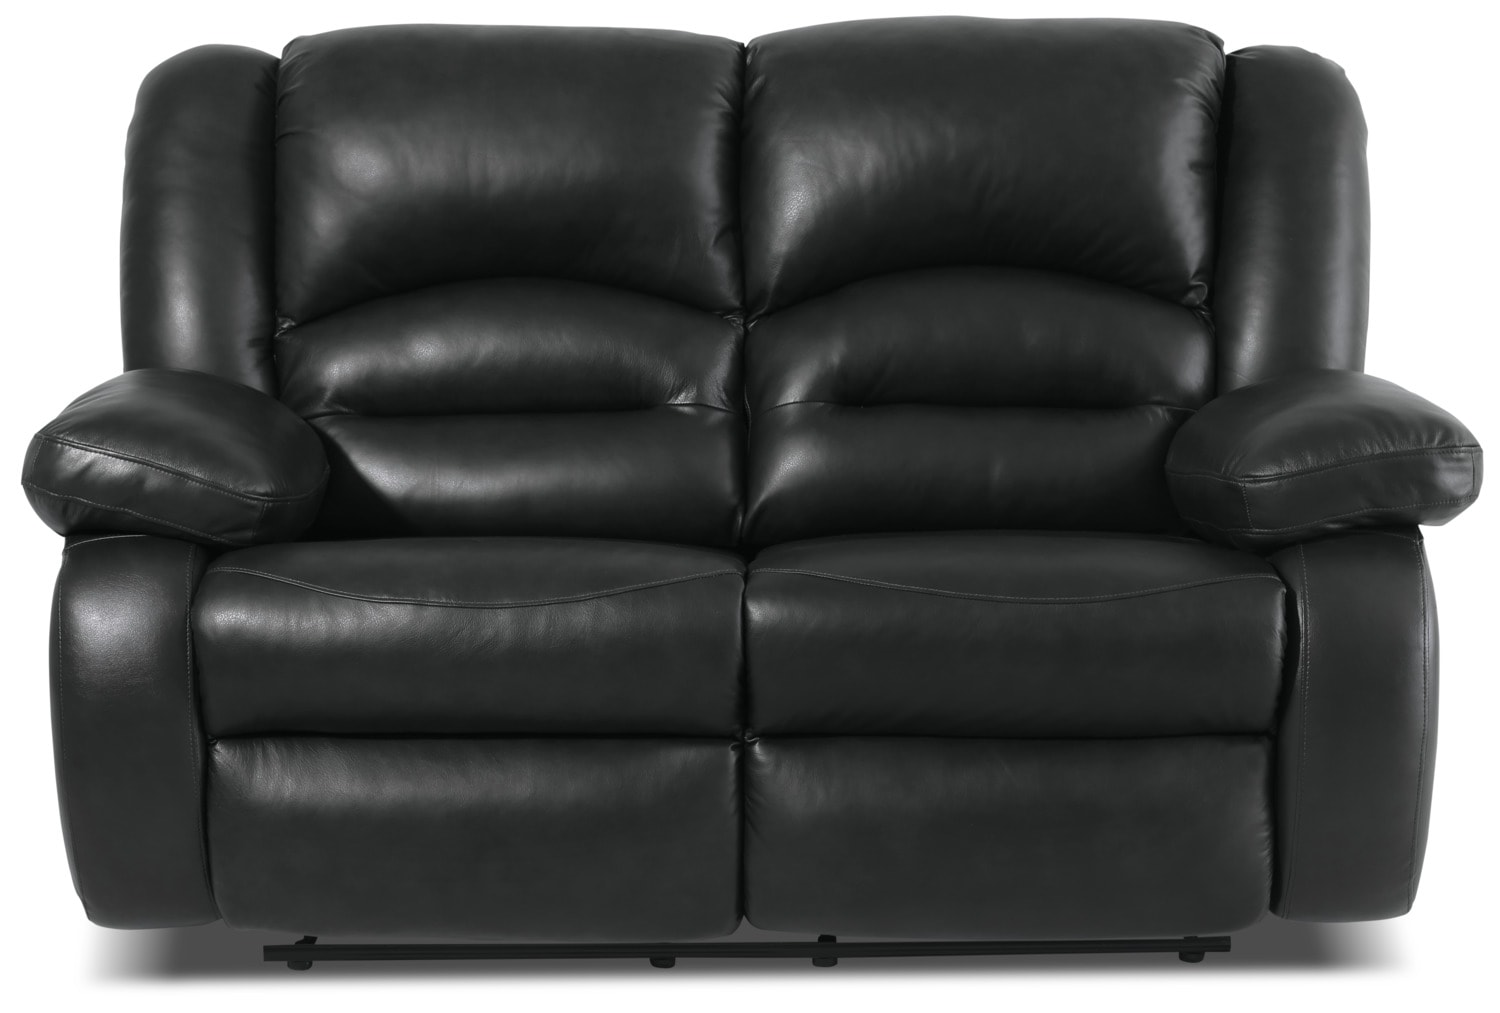 Toreno Genuine Leather Reclining Loveseat – Black